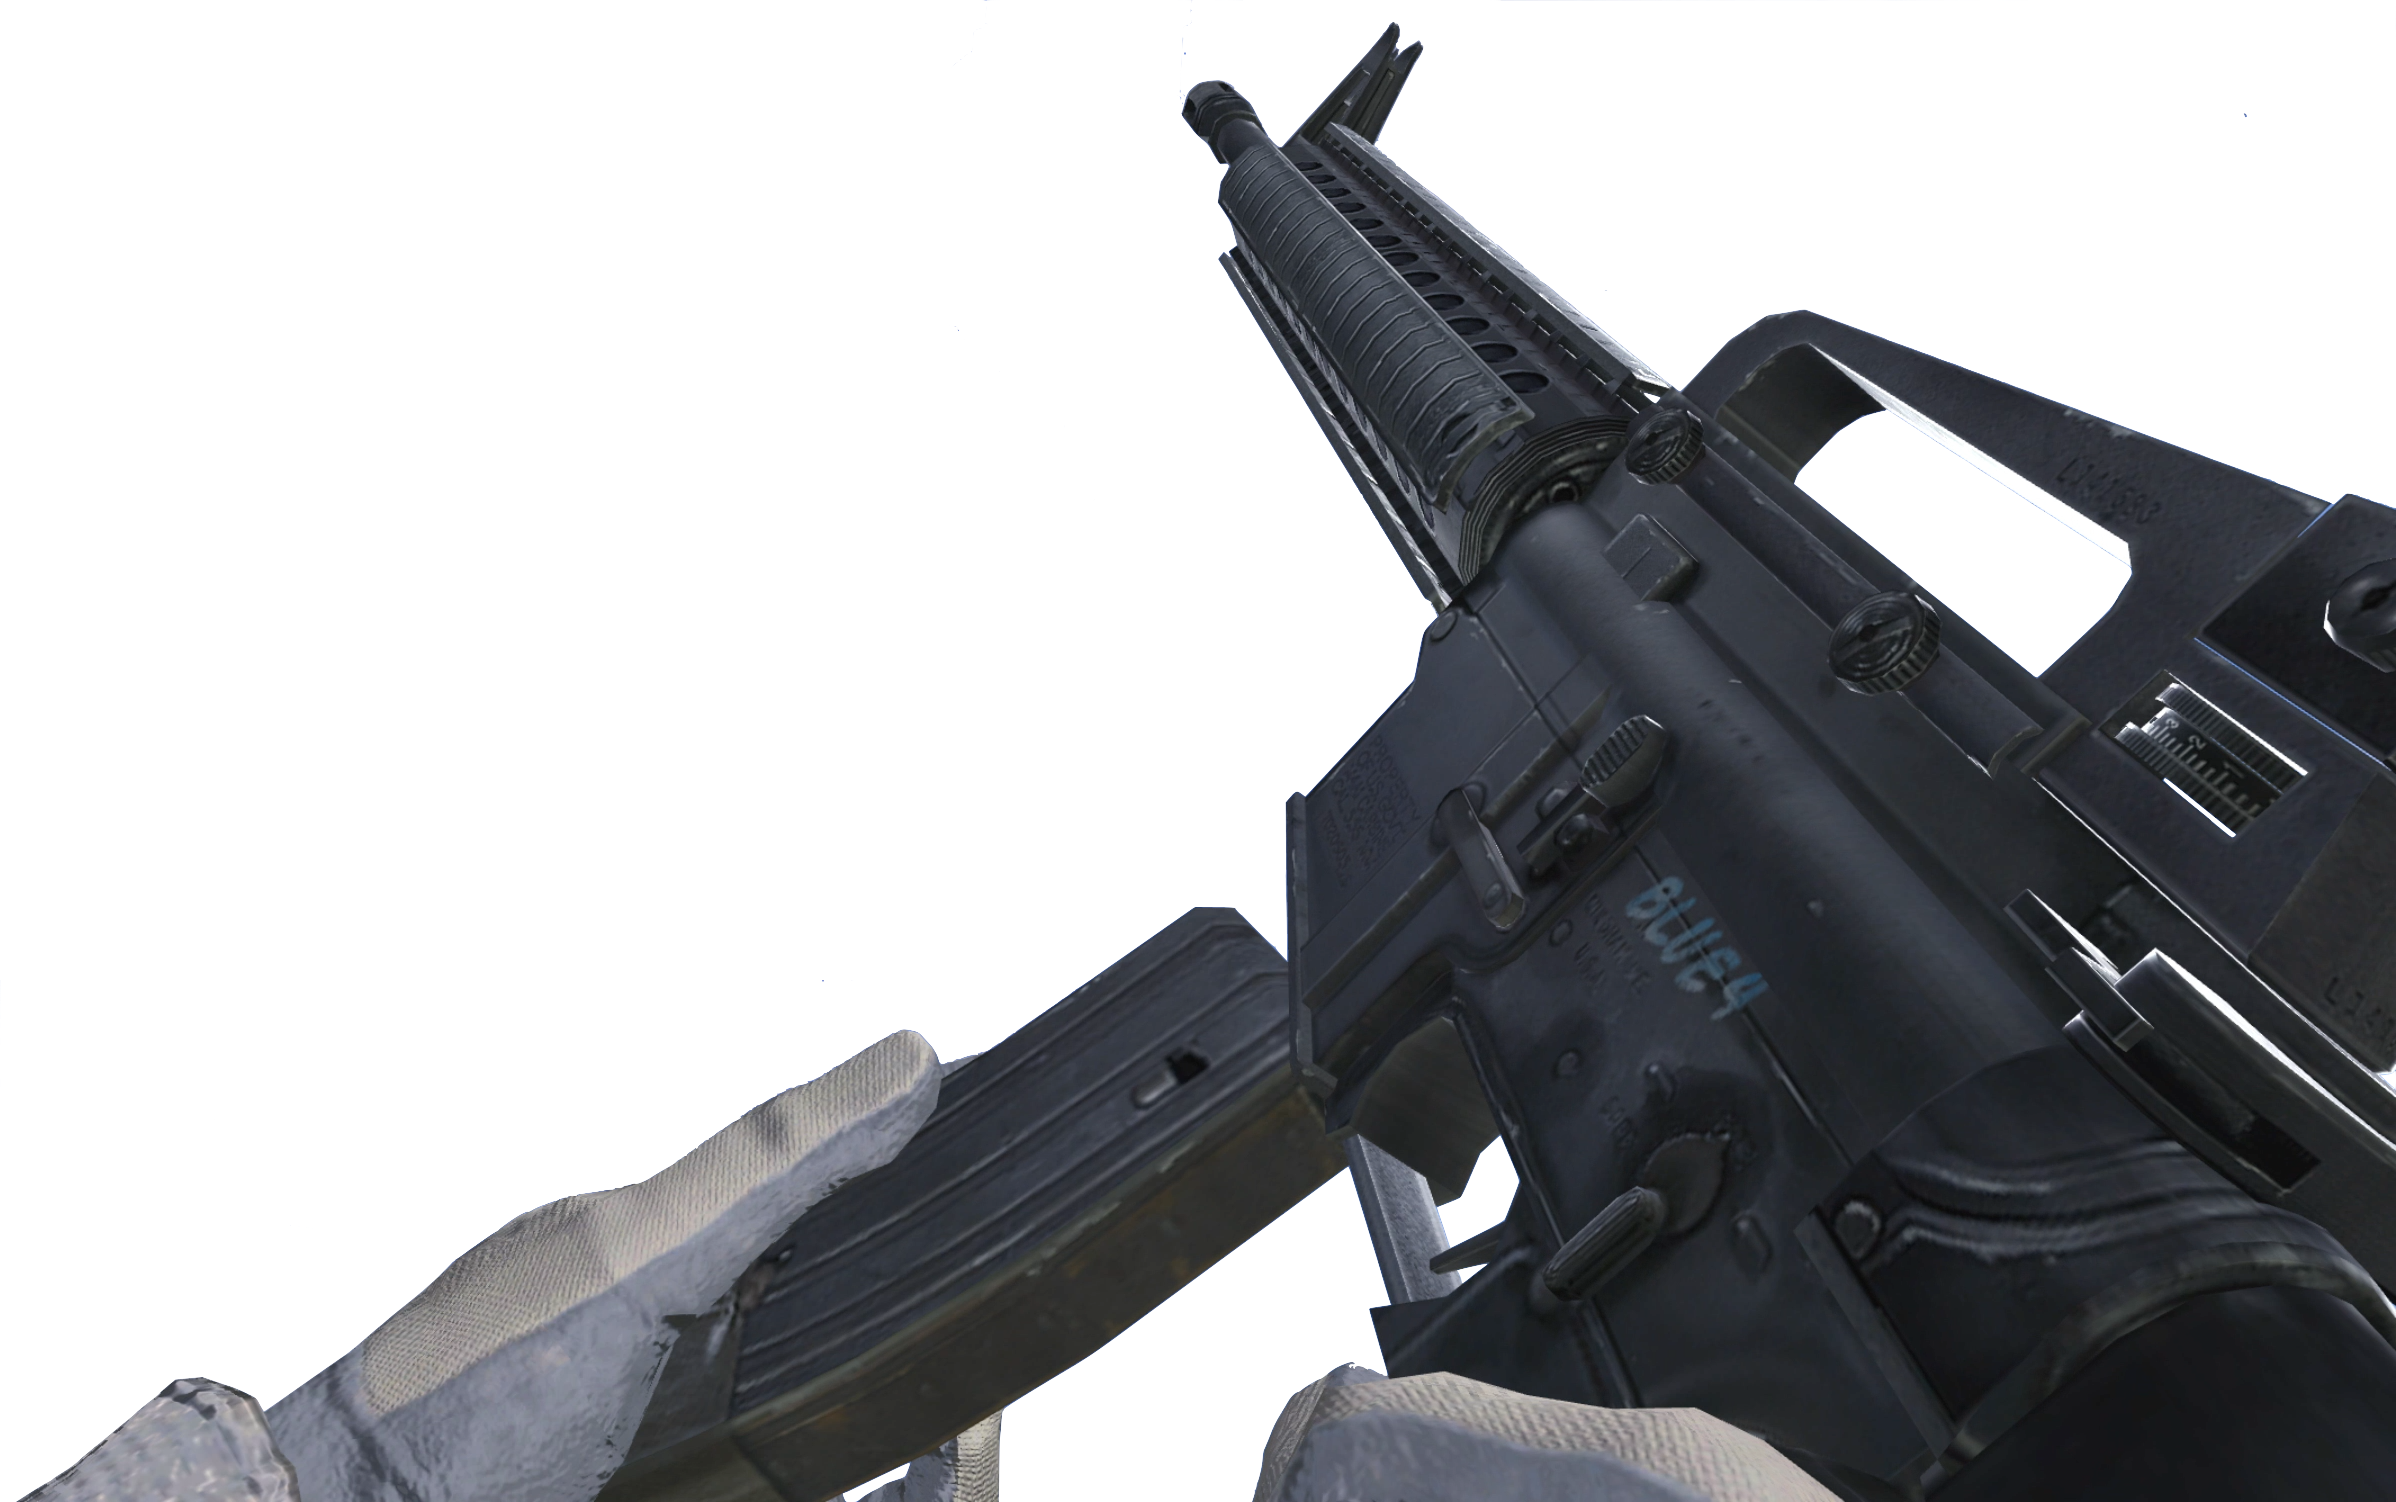 Image - M16A4 Reload CoD4.png - The Call of Duty Wiki ... M16a4 Mw2